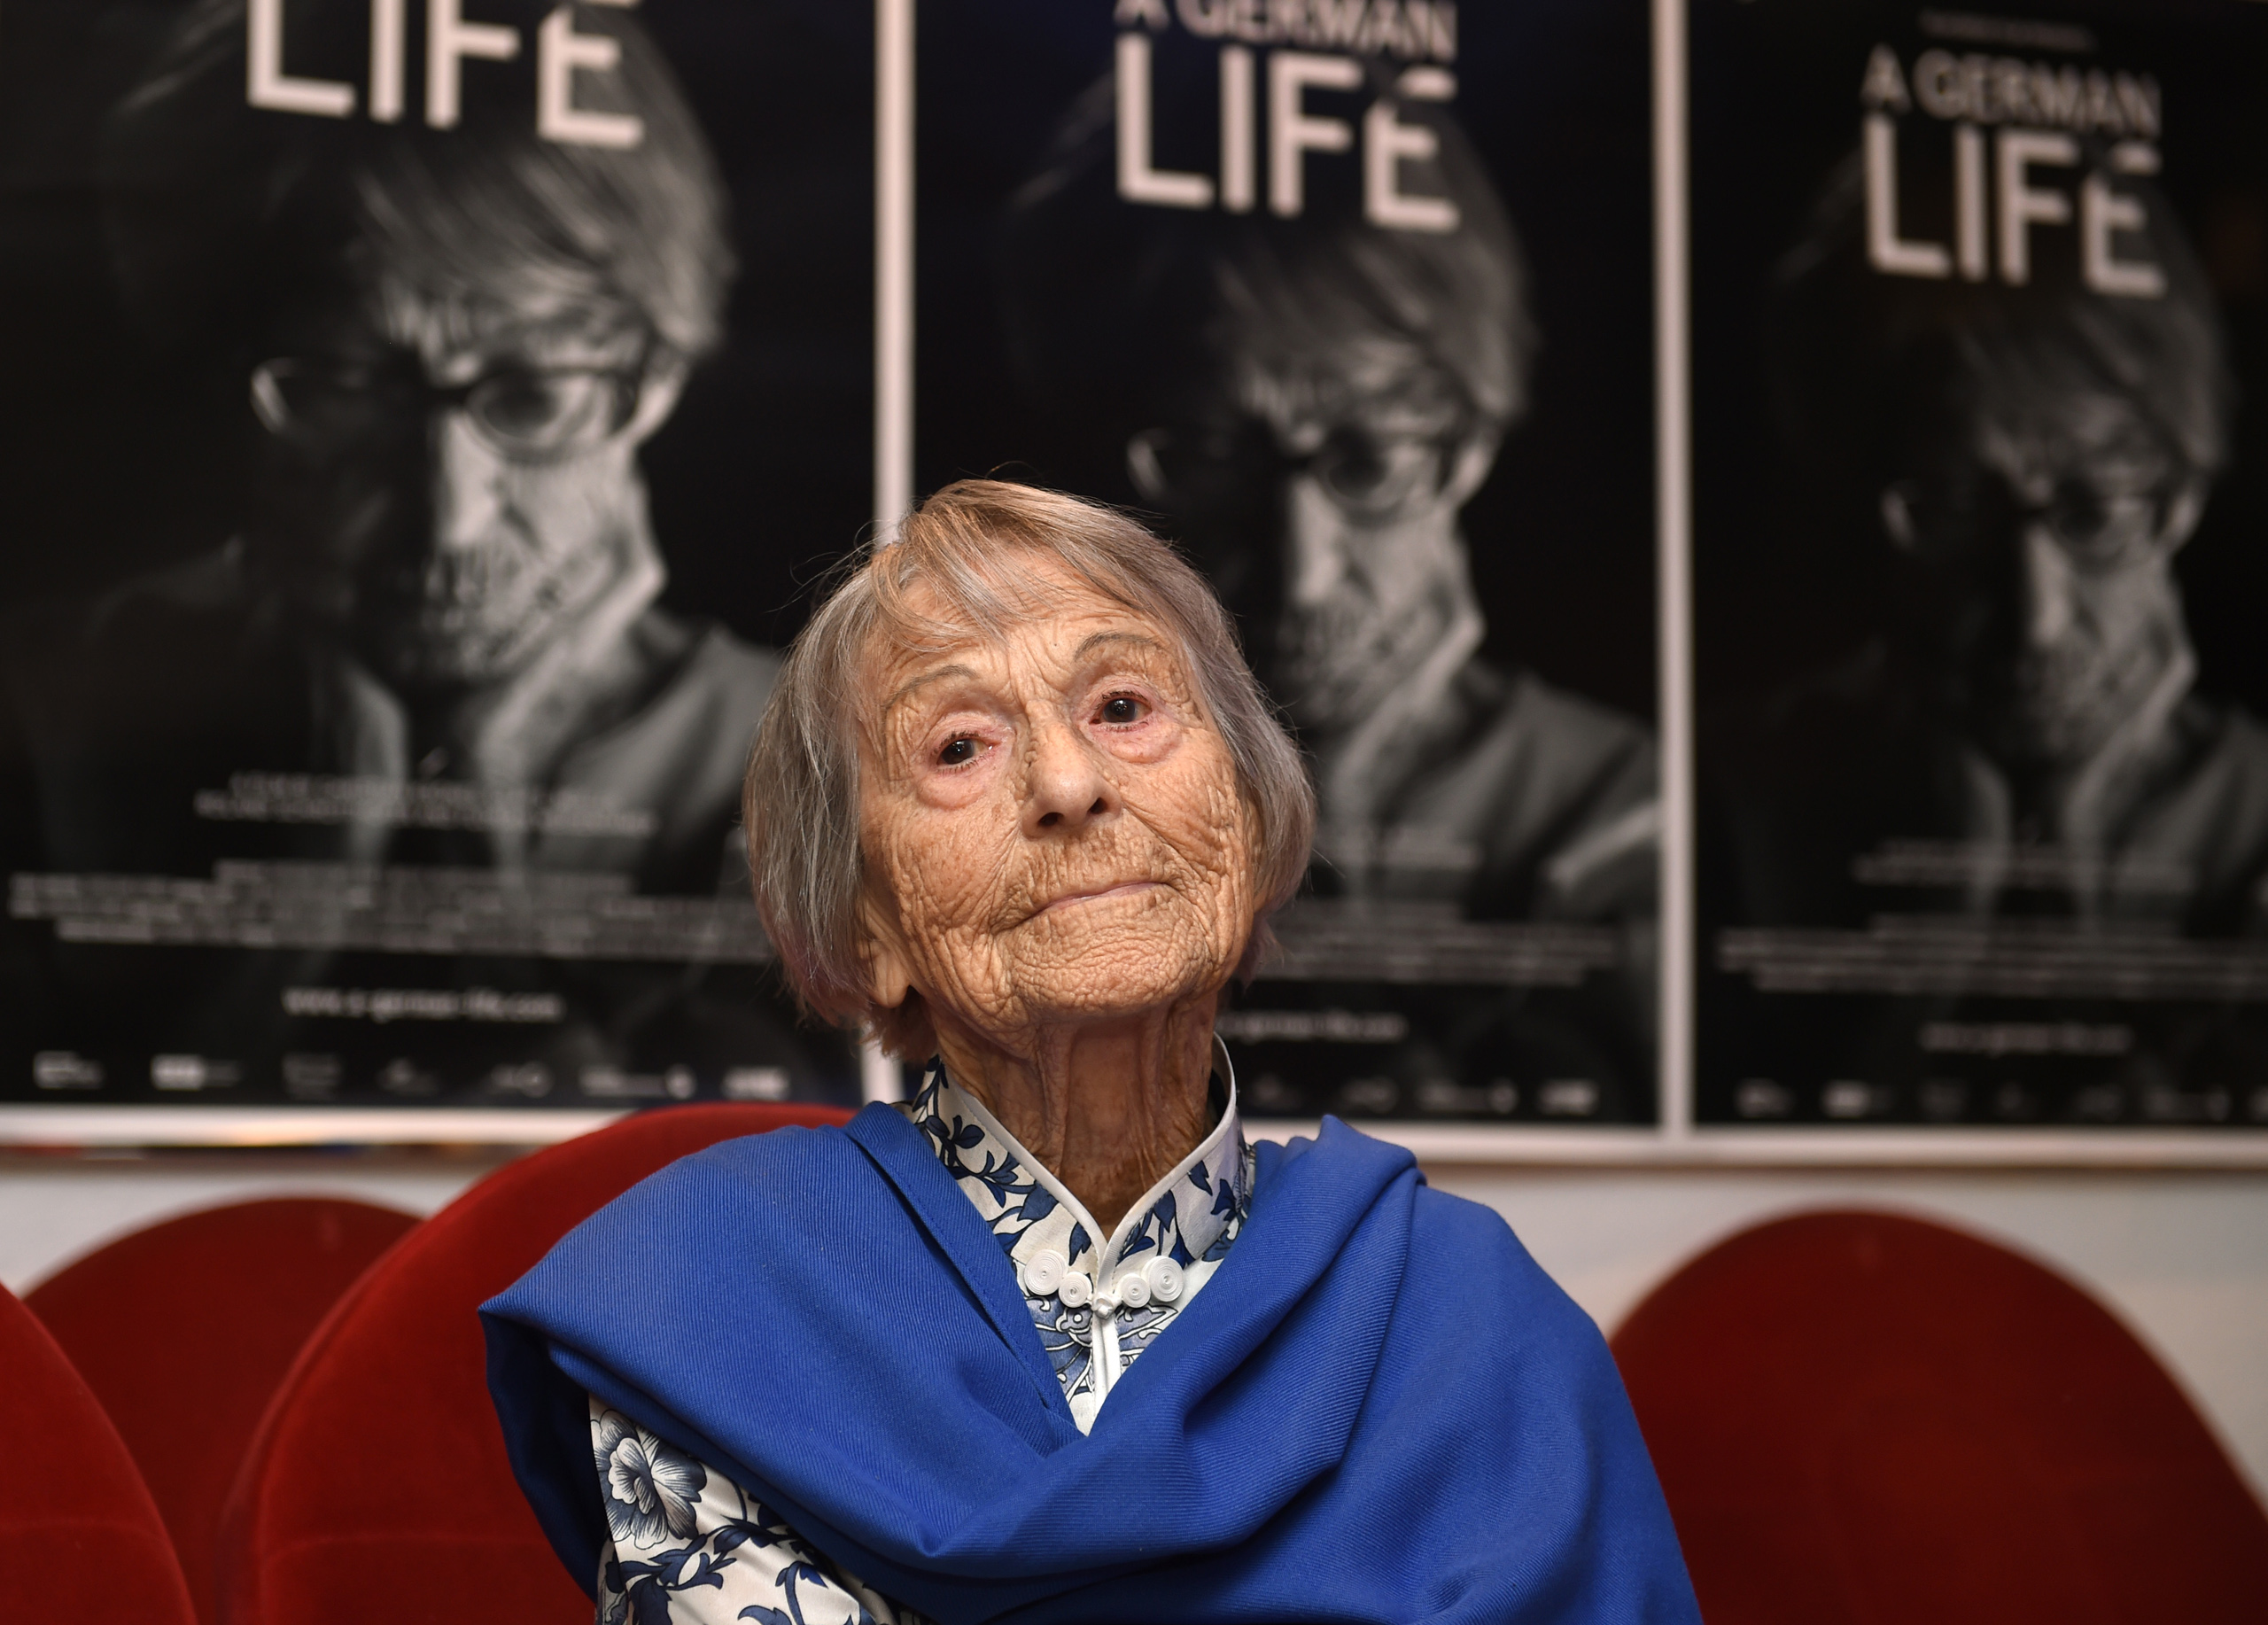 Brunhilde Pomsel, former secretary of Nazi propaganda chief Joseph Goebbels, sits on a cinema chair in front of posters for the movie  A German life  in a cinema in Munich, southern Germany, on June 29, 2016.